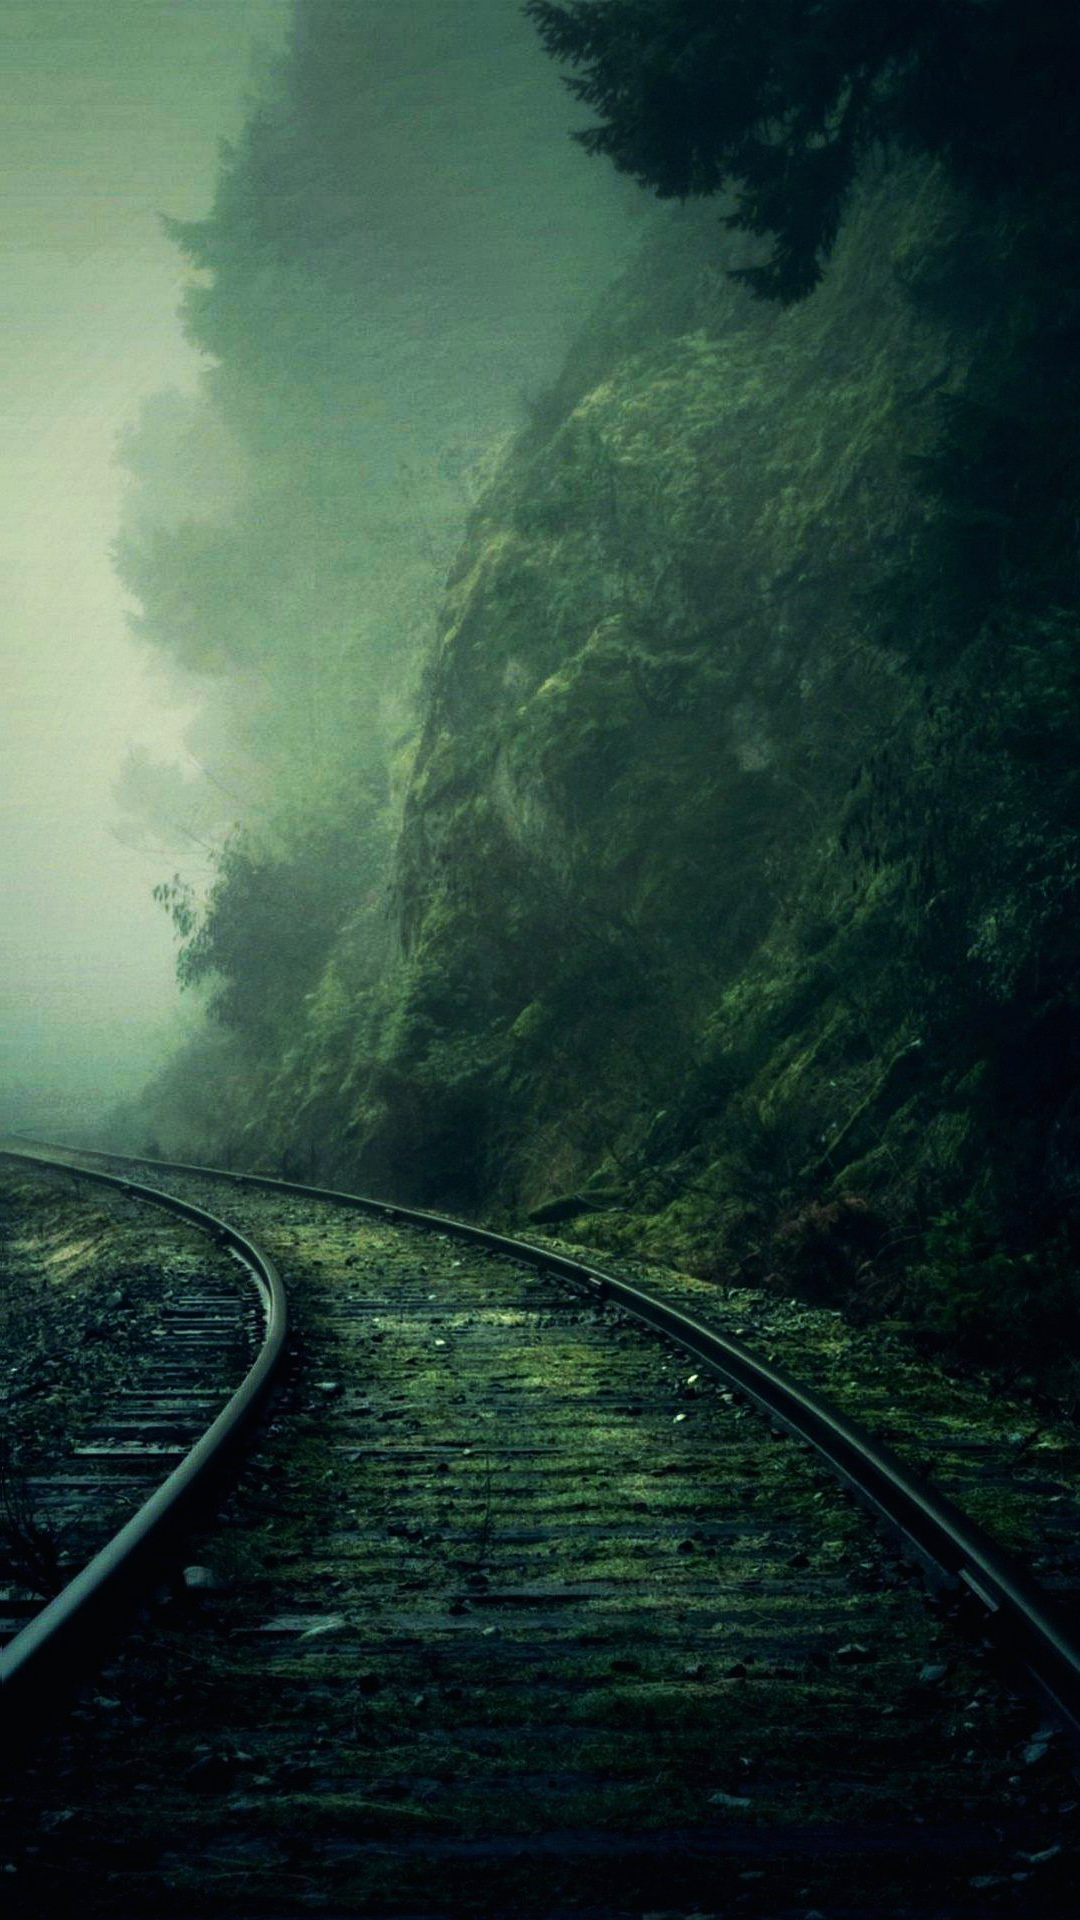 Hd Wallpapers Brands Logos Dark Trail Hd Wallpaper For Your Mobile Phone